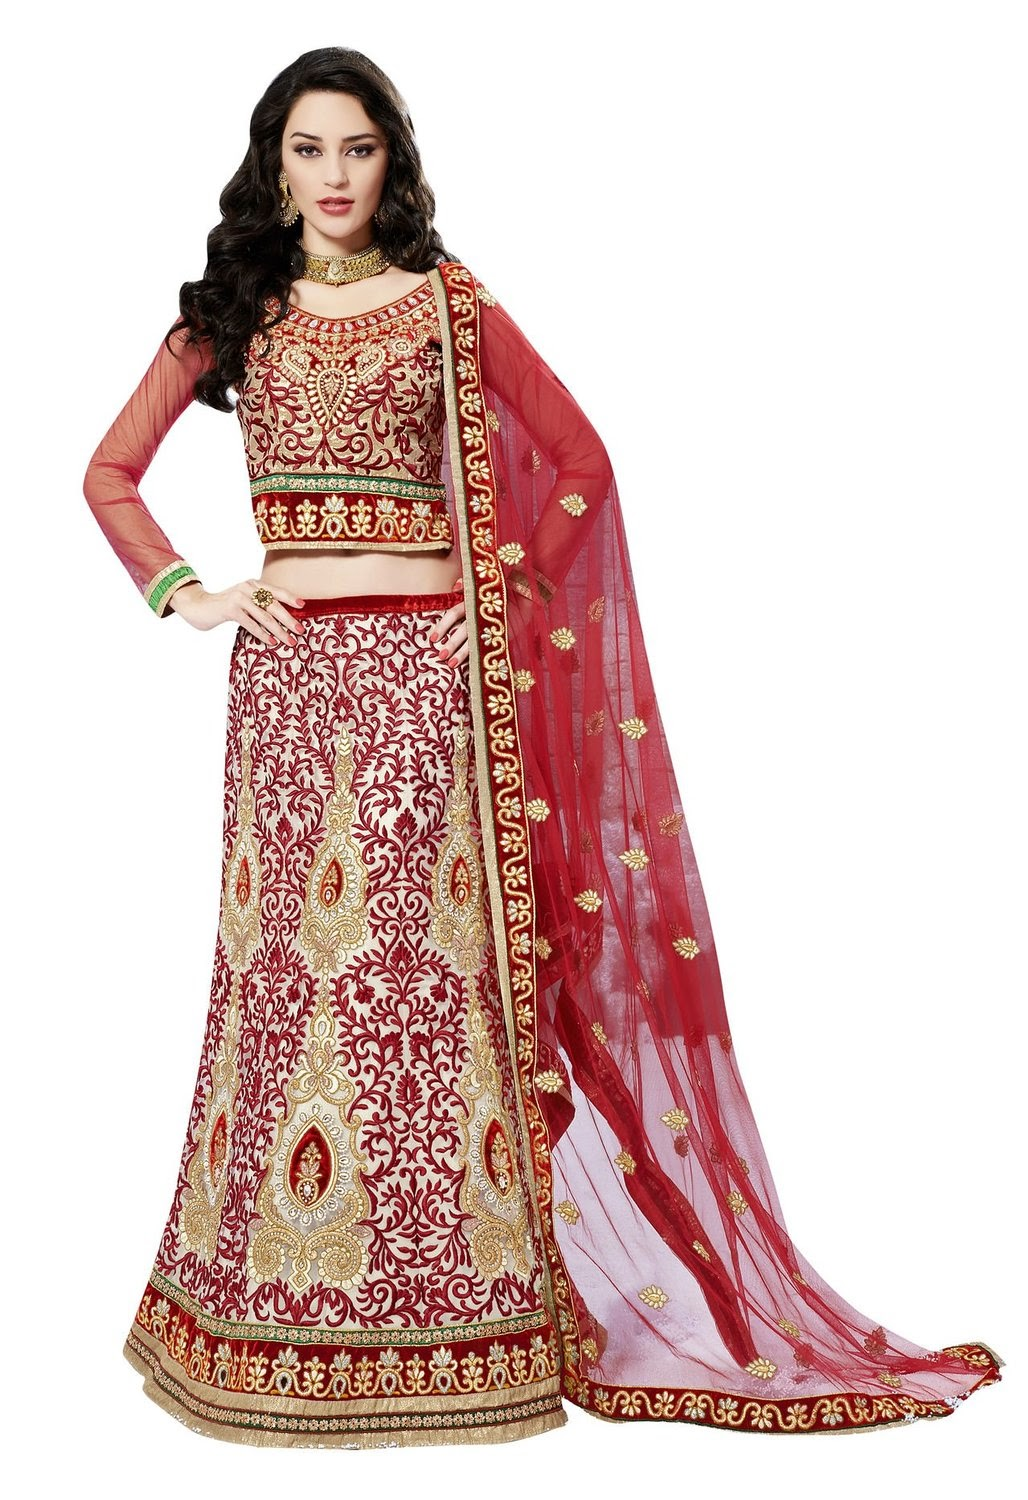 bcd9990231ce91 Are You Waiting for Discount on Bridal Wear on Online Shopping at ...